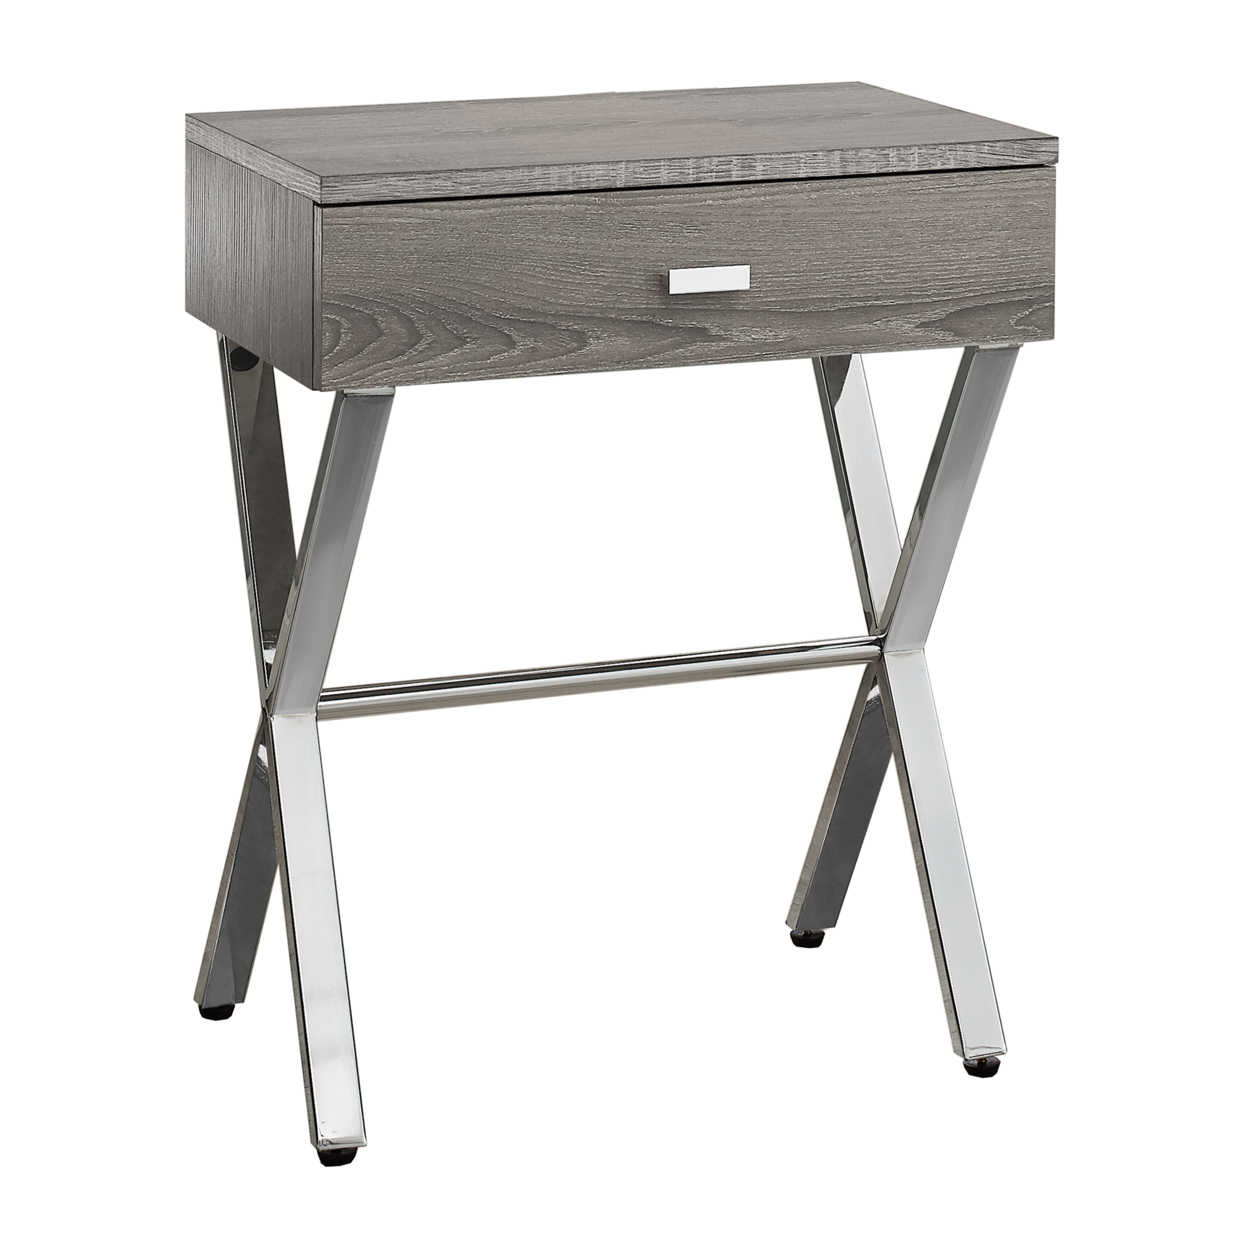 ACCENT TABLE - DARK TAUPE, CHROME METAL NIGHT STAND напольная плитка cerdomus chrome kirman taupe rett 60x60